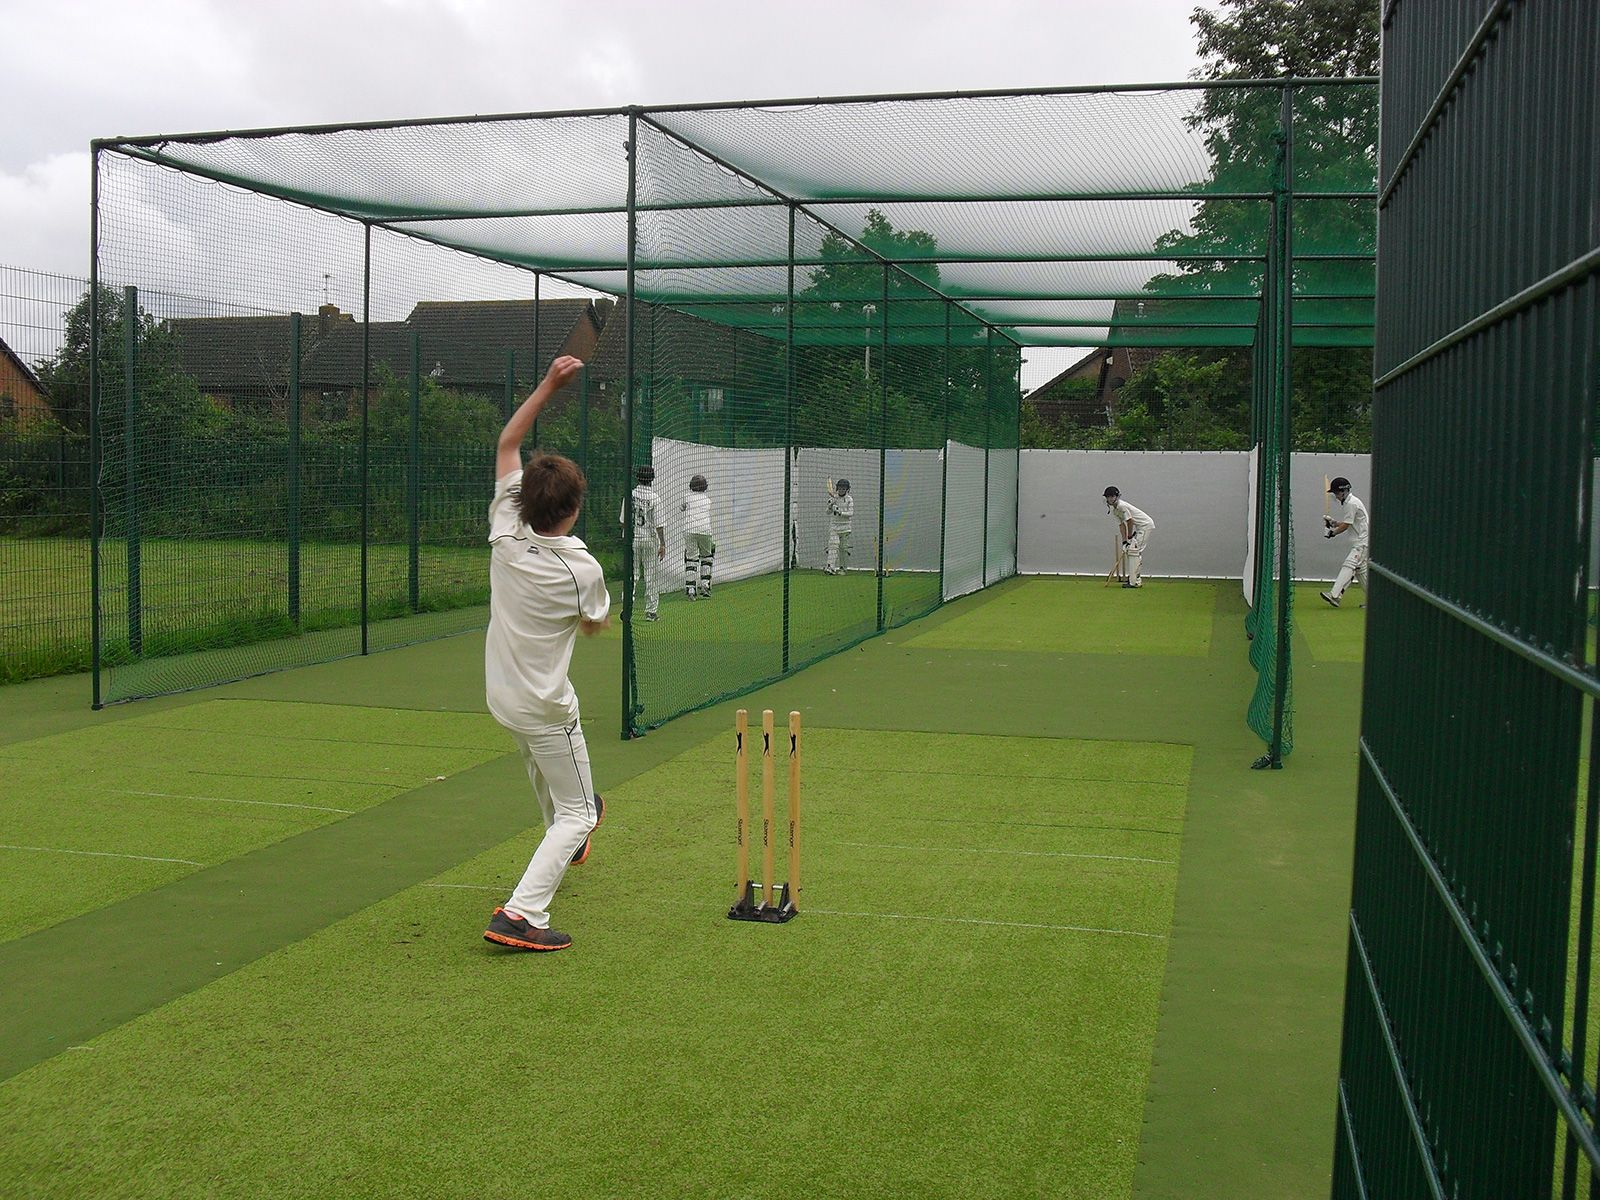 Kennet School Cricket Pitches With Practice Nets Cricket Nets Outdoor Gym History Of Cricket